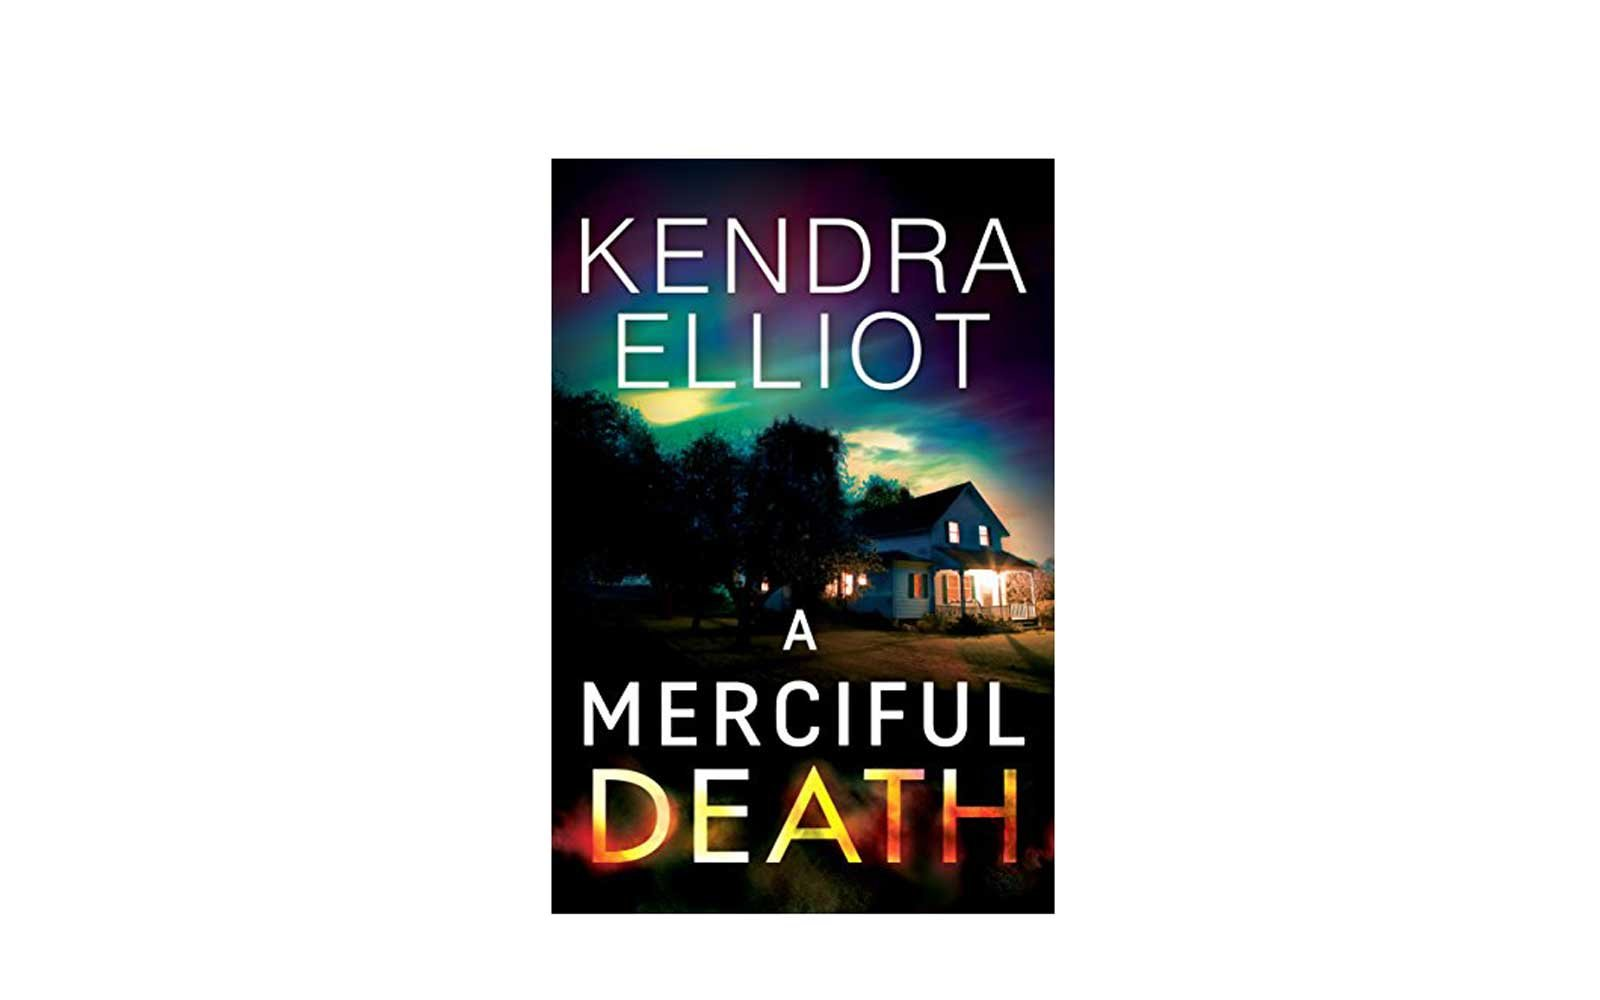 20 most popular Kindle books 2017 A Merciful Death